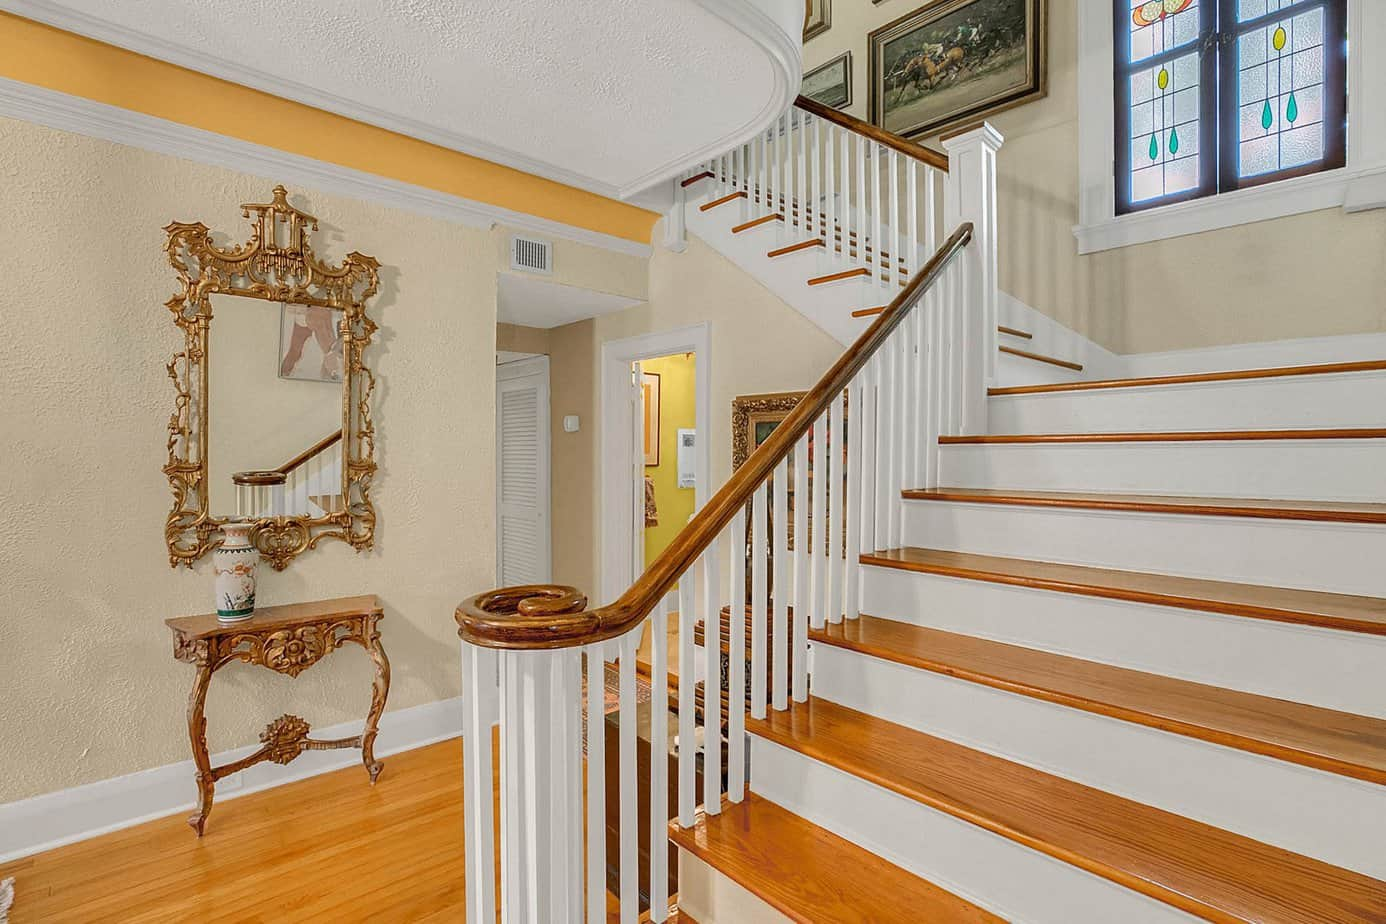 Curving Staircase With Wood Floors, wood stairs, white spindle, and side table for home for sale at 4024 W Bay to Bay Tampa FL 33629